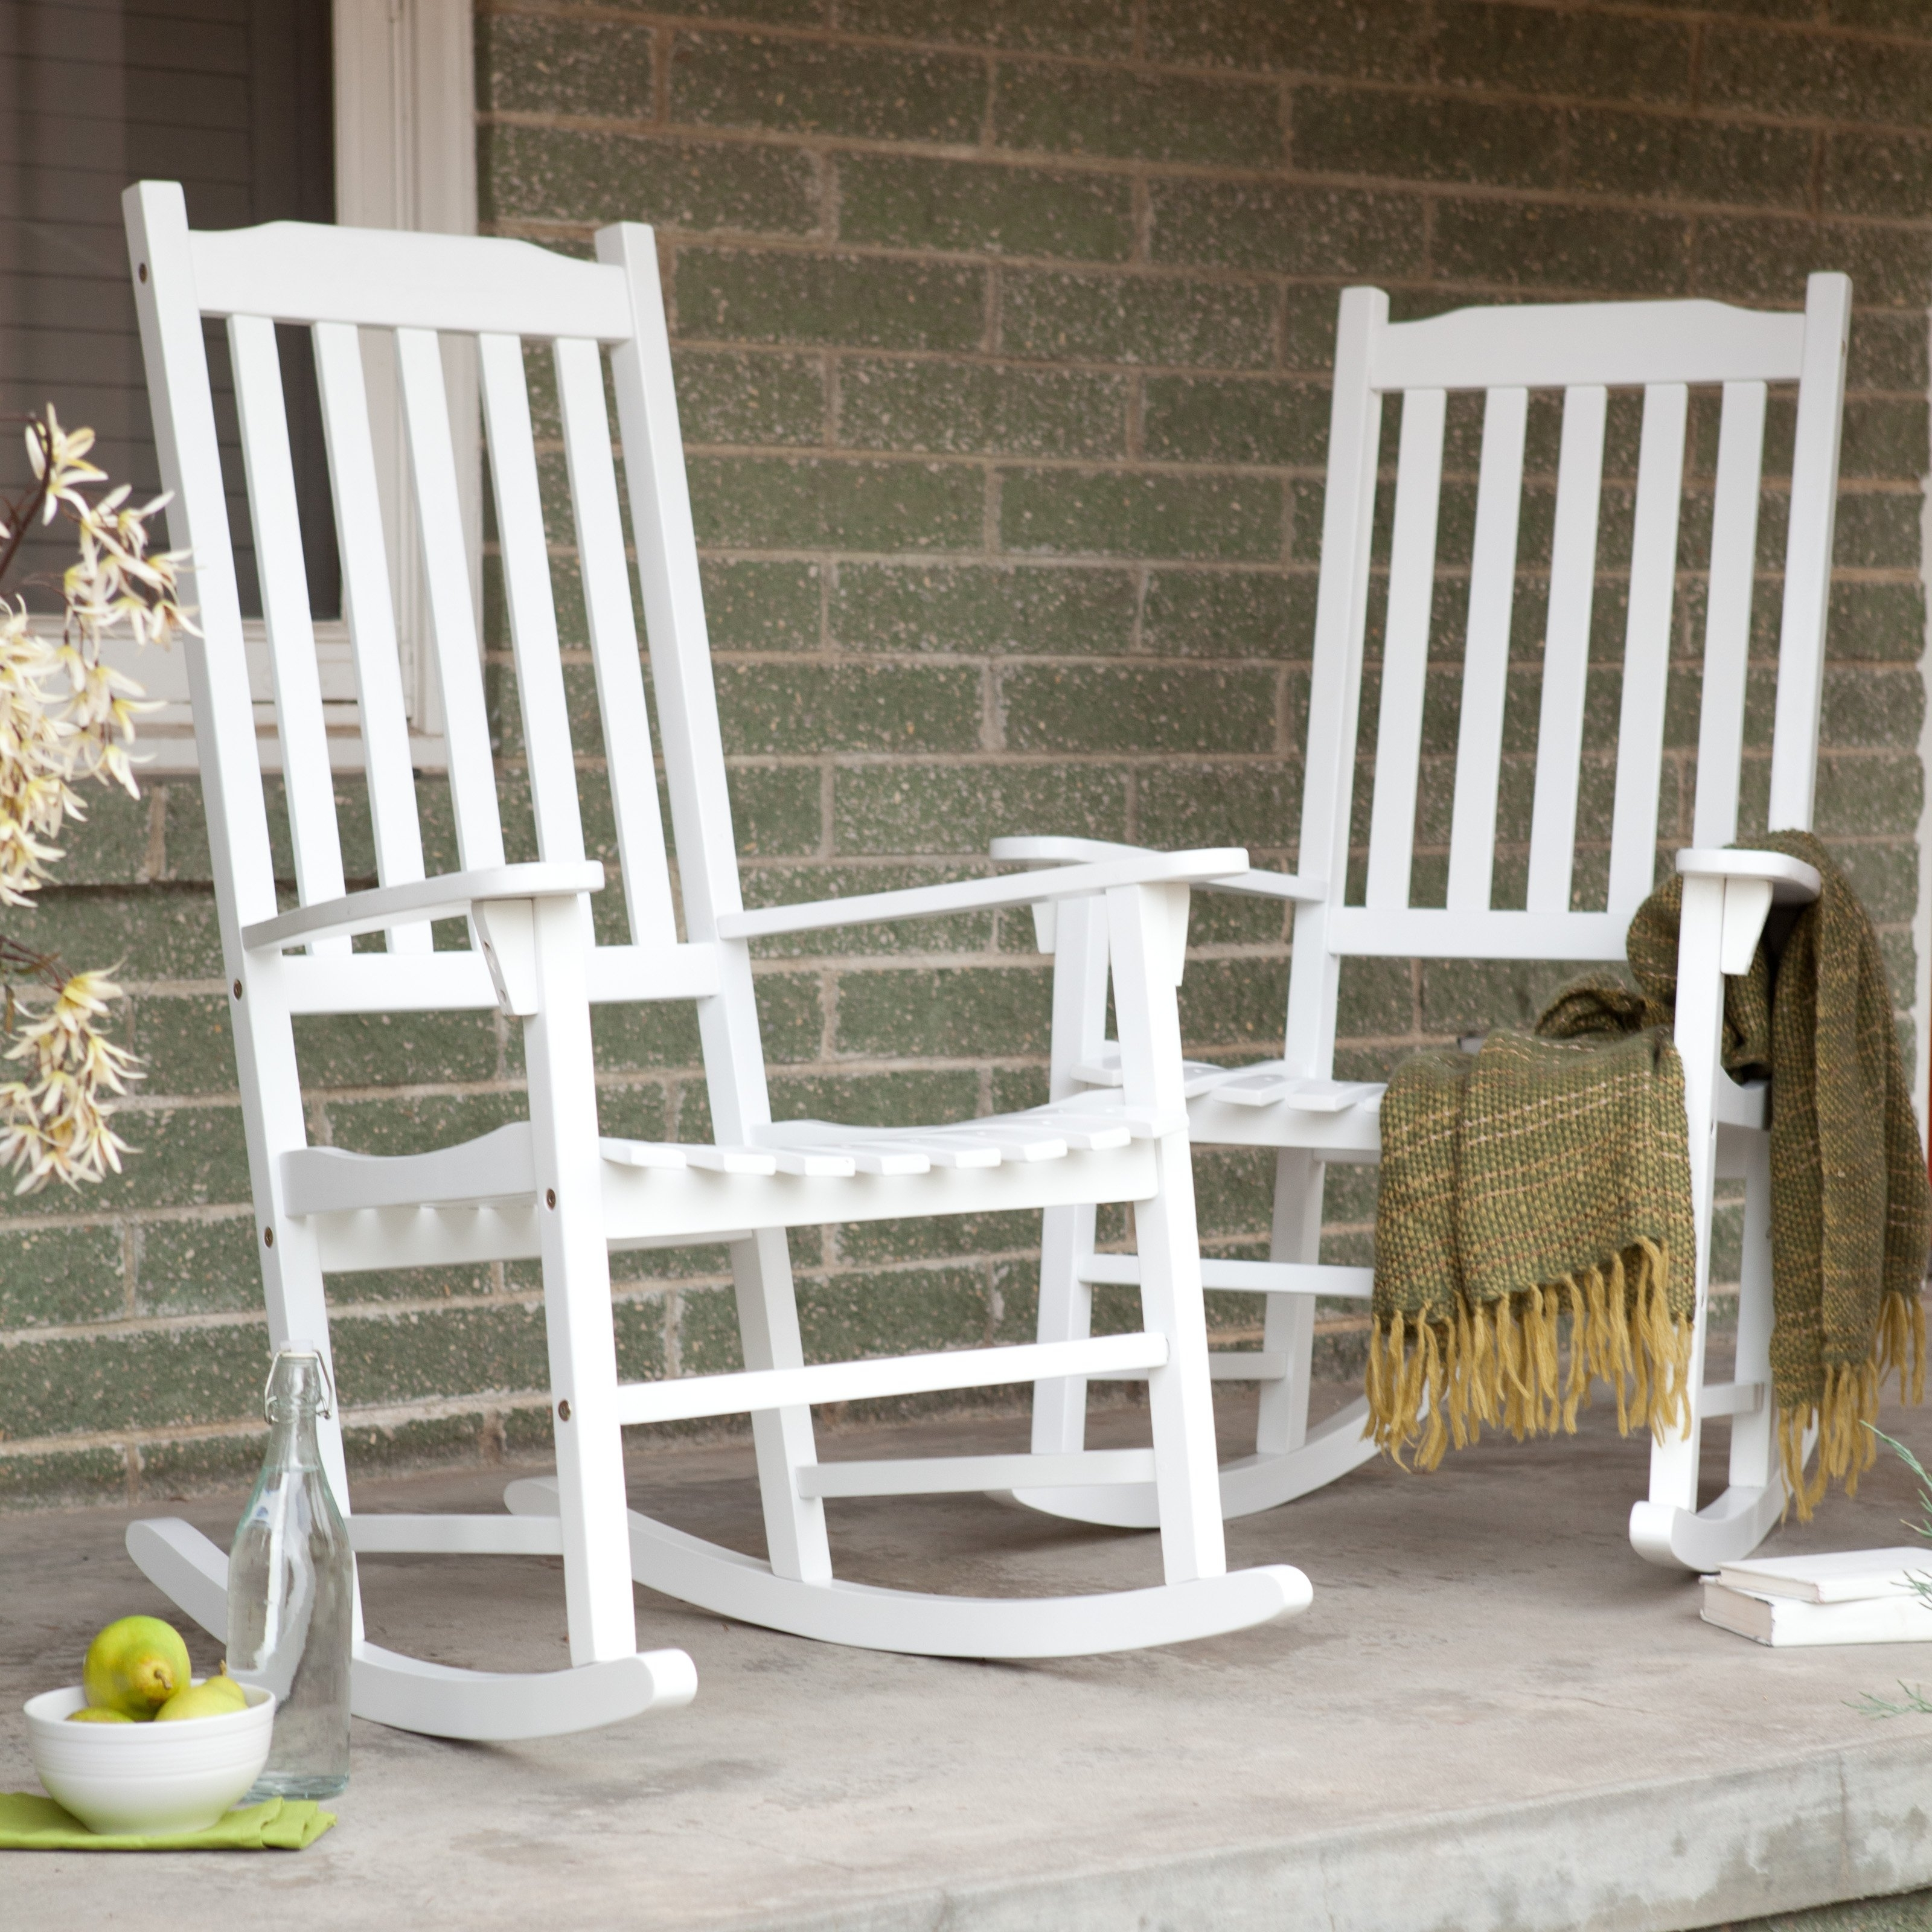 Coral Coast Indoor/outdoor Mission Slat Rocking Chairs – White – Set Intended For Well Known Outside Rocking Chair Sets (View 11 of 20)